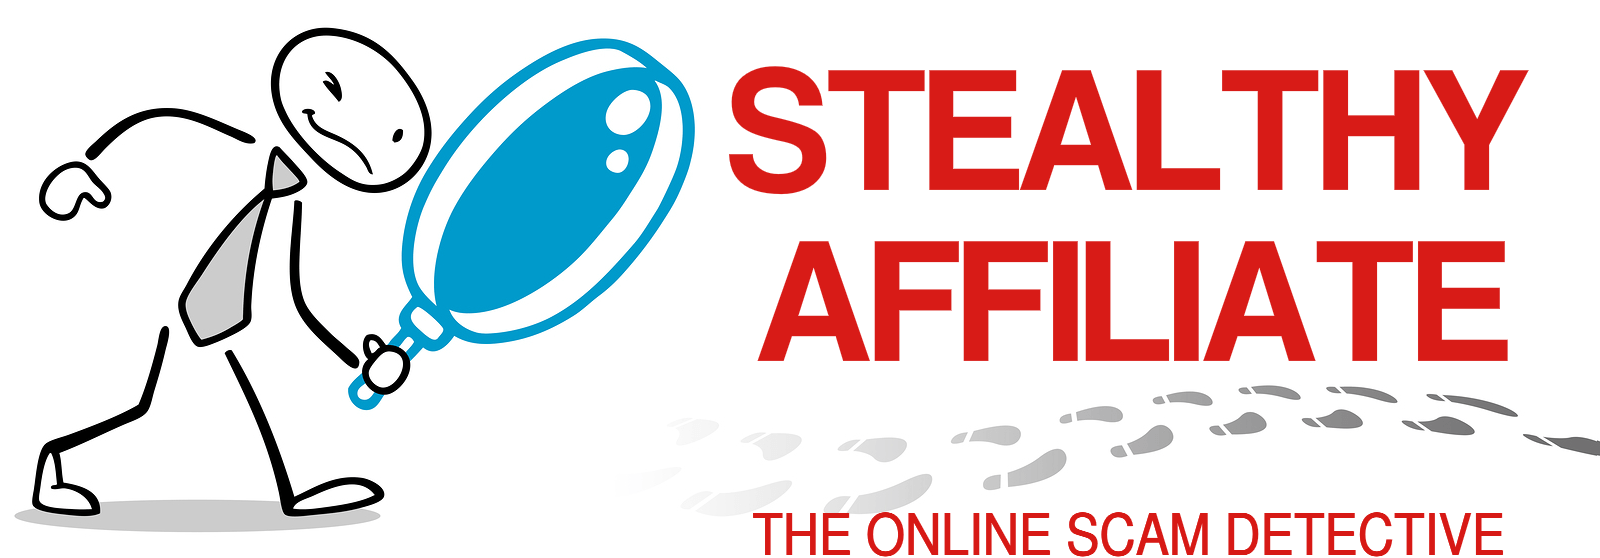 Stealthy Affiliate